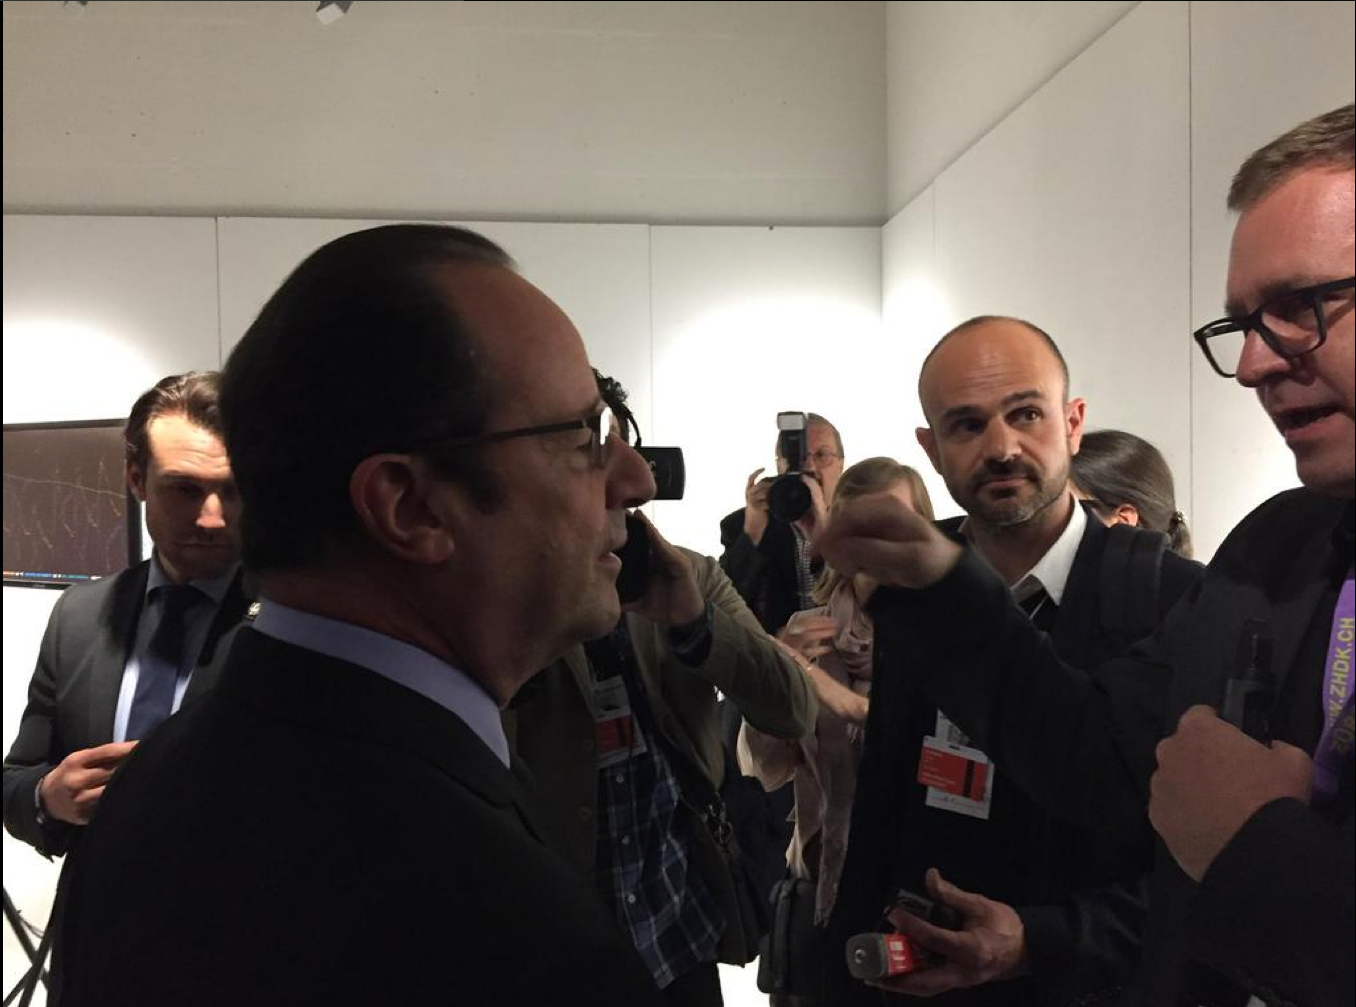 Marcus Maeder explains the 'trees' project to President Hollande